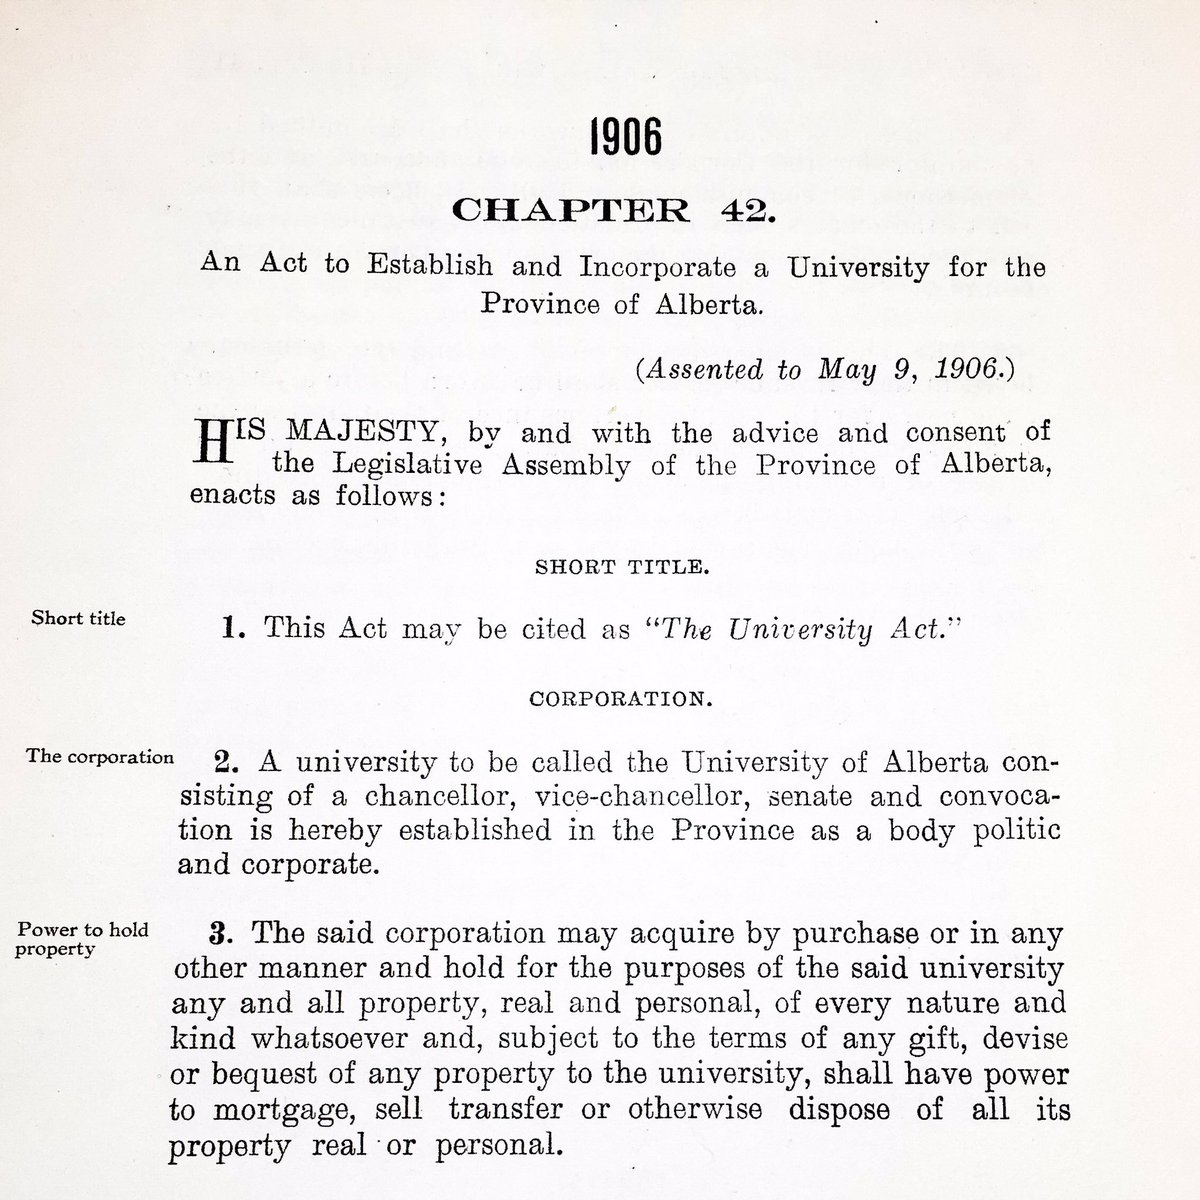 110 years ago today, a university was established for the province of Alberta. Happy birthday, #UAlberta! https://t.co/h6rHOu8EkH